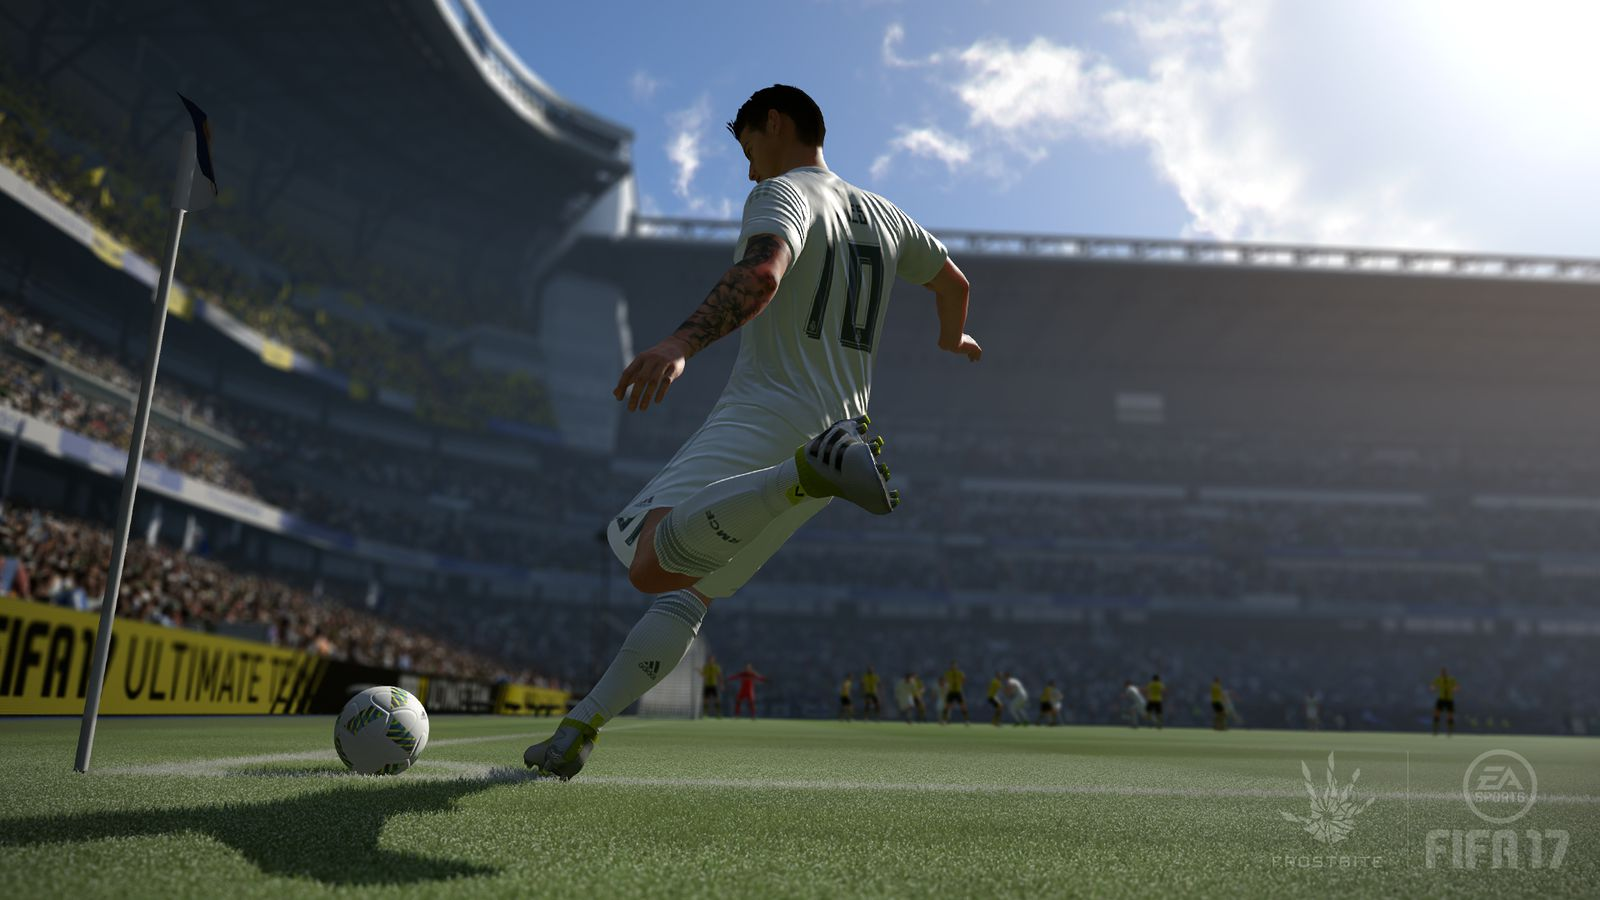 FIFA 17 is aiming for romance of the beautiful game